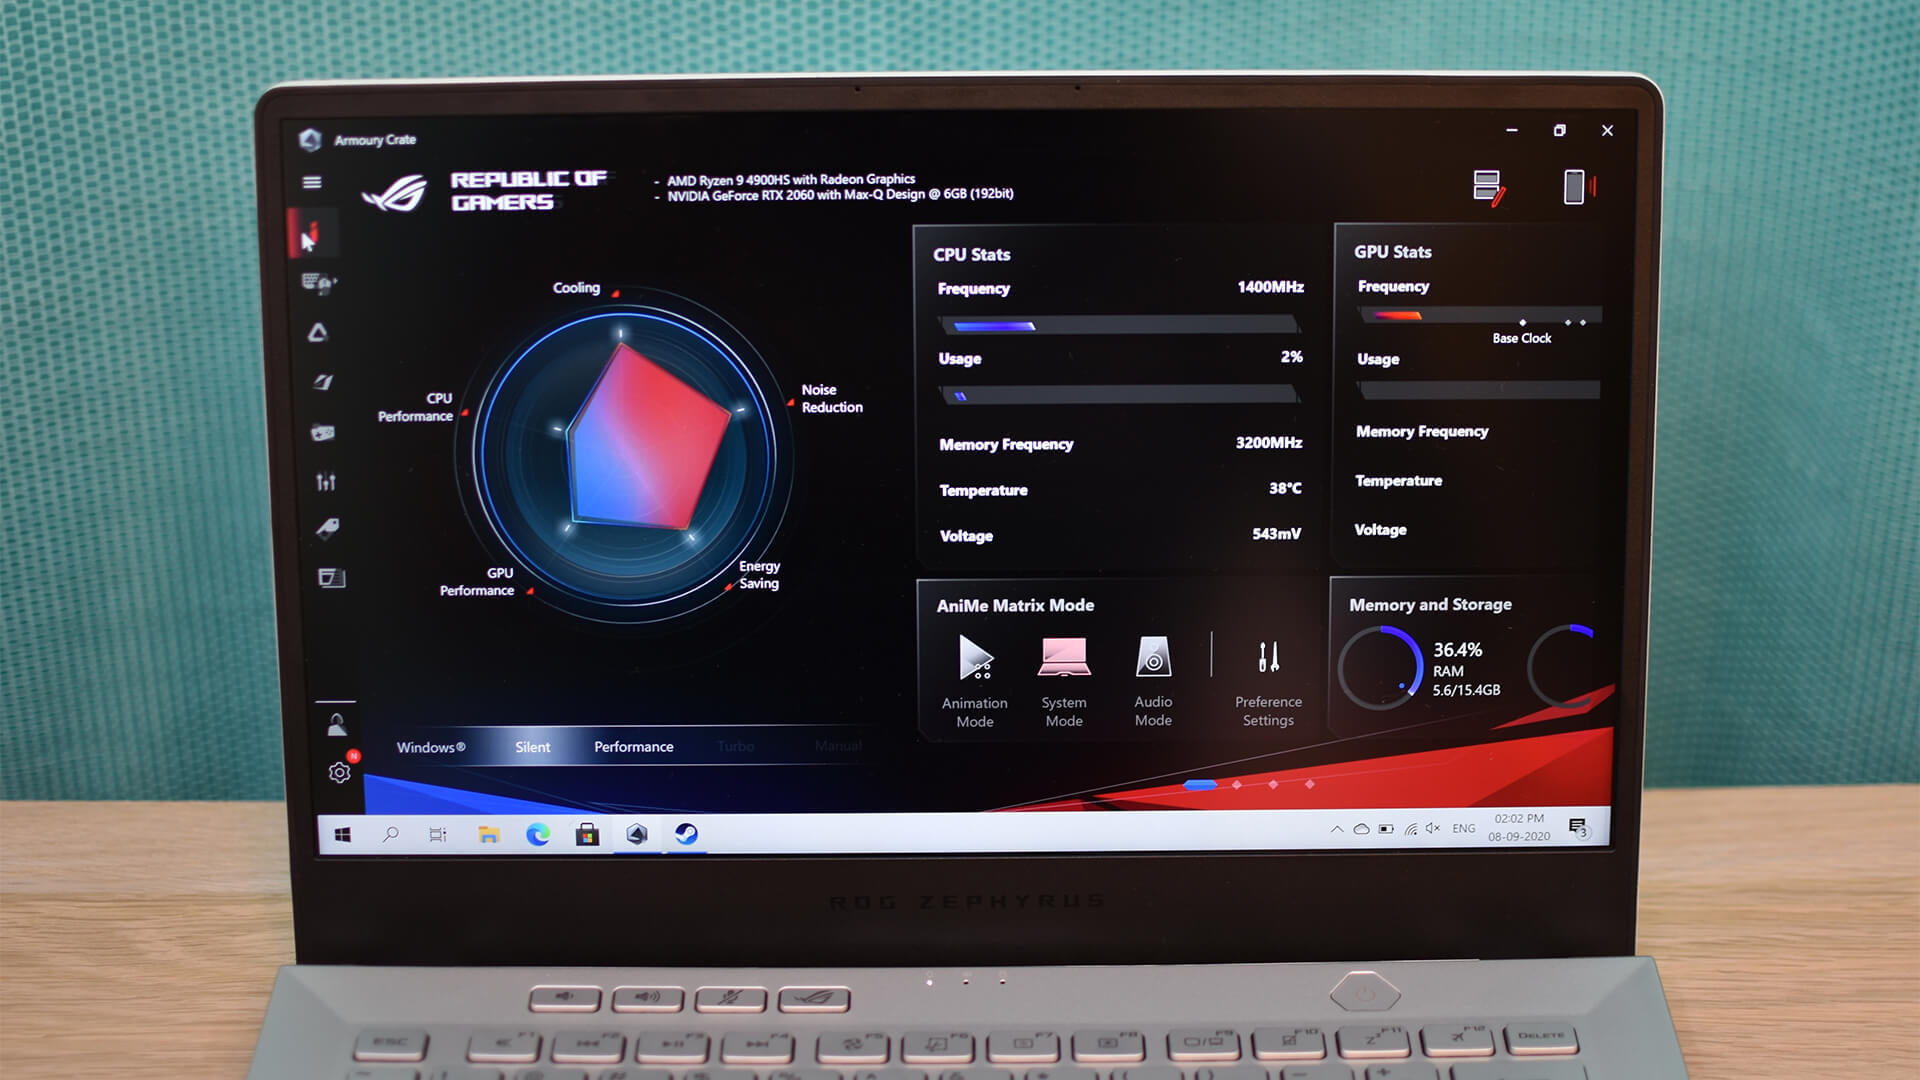 ASUS ROG Zephyrus G14 Armoury Crate Software